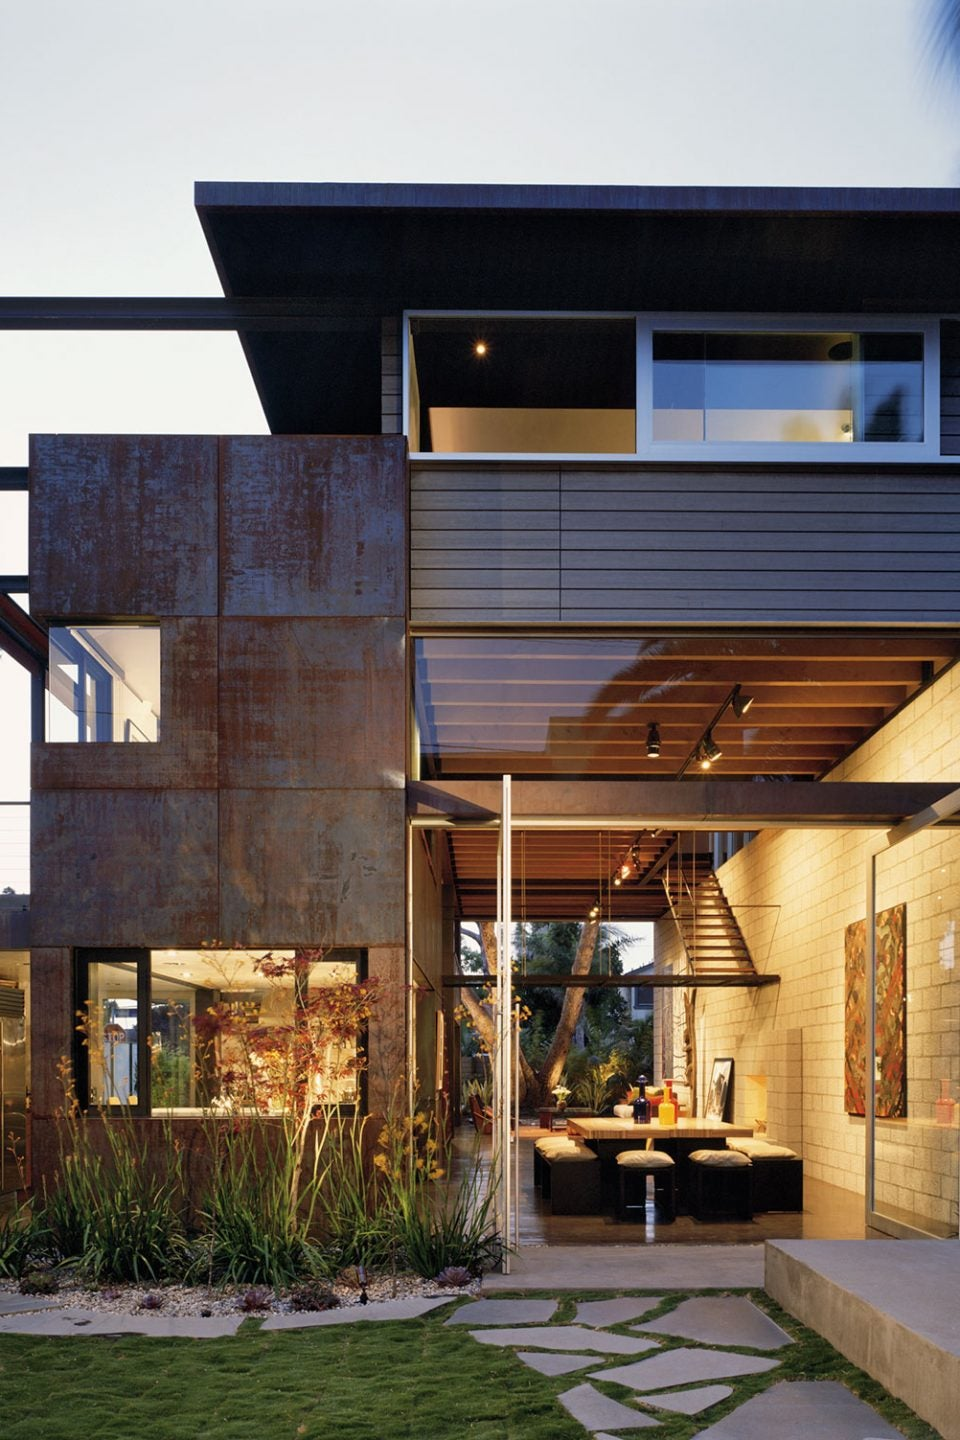 California Modernism Gets a Refreshing Update from EYRC Architects